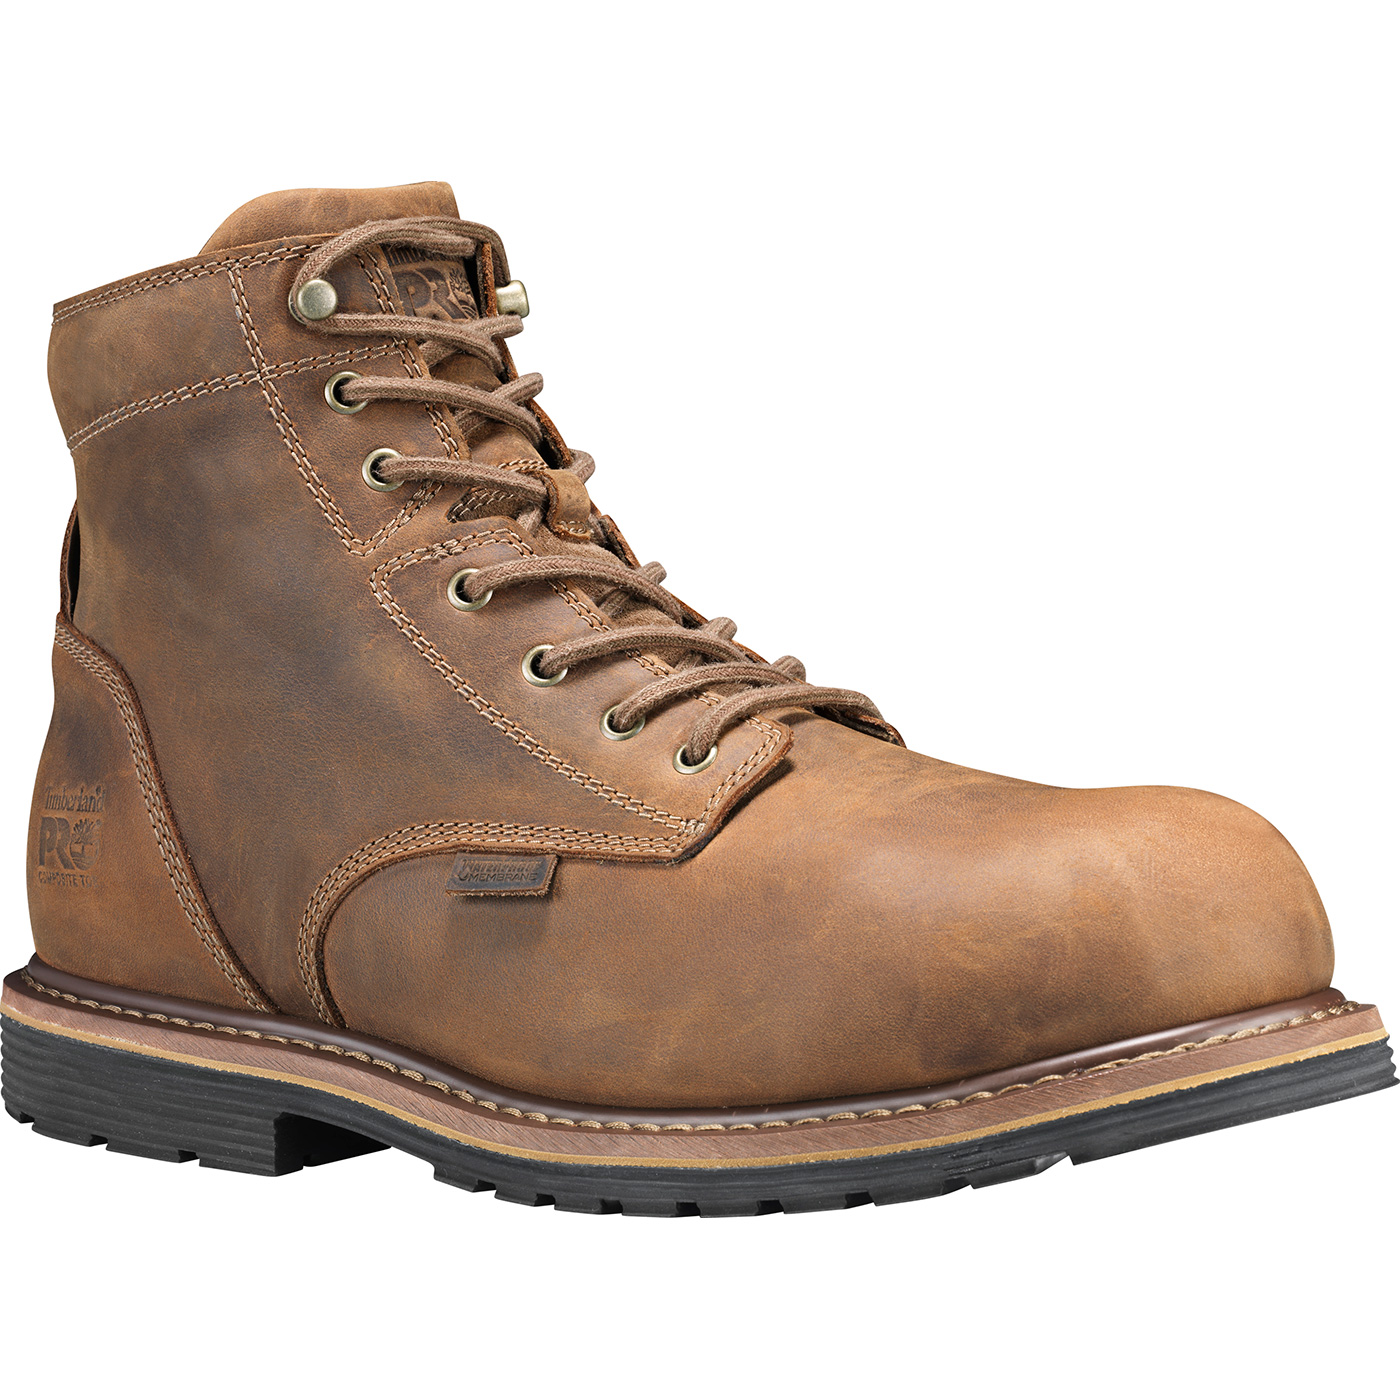 7abee0e9969 Timberland PRO Millworks Men's 6 inch Composite Toe Electrical Hazard  Waterproof Leather Work Boot